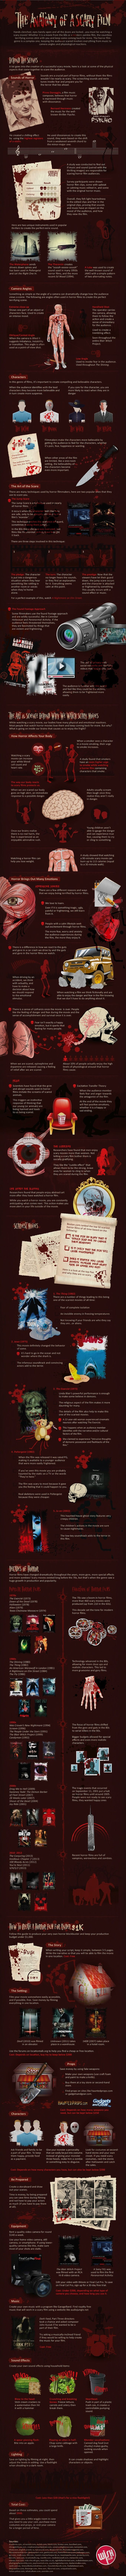 The Anatomy of a Scary Film: An Infographic